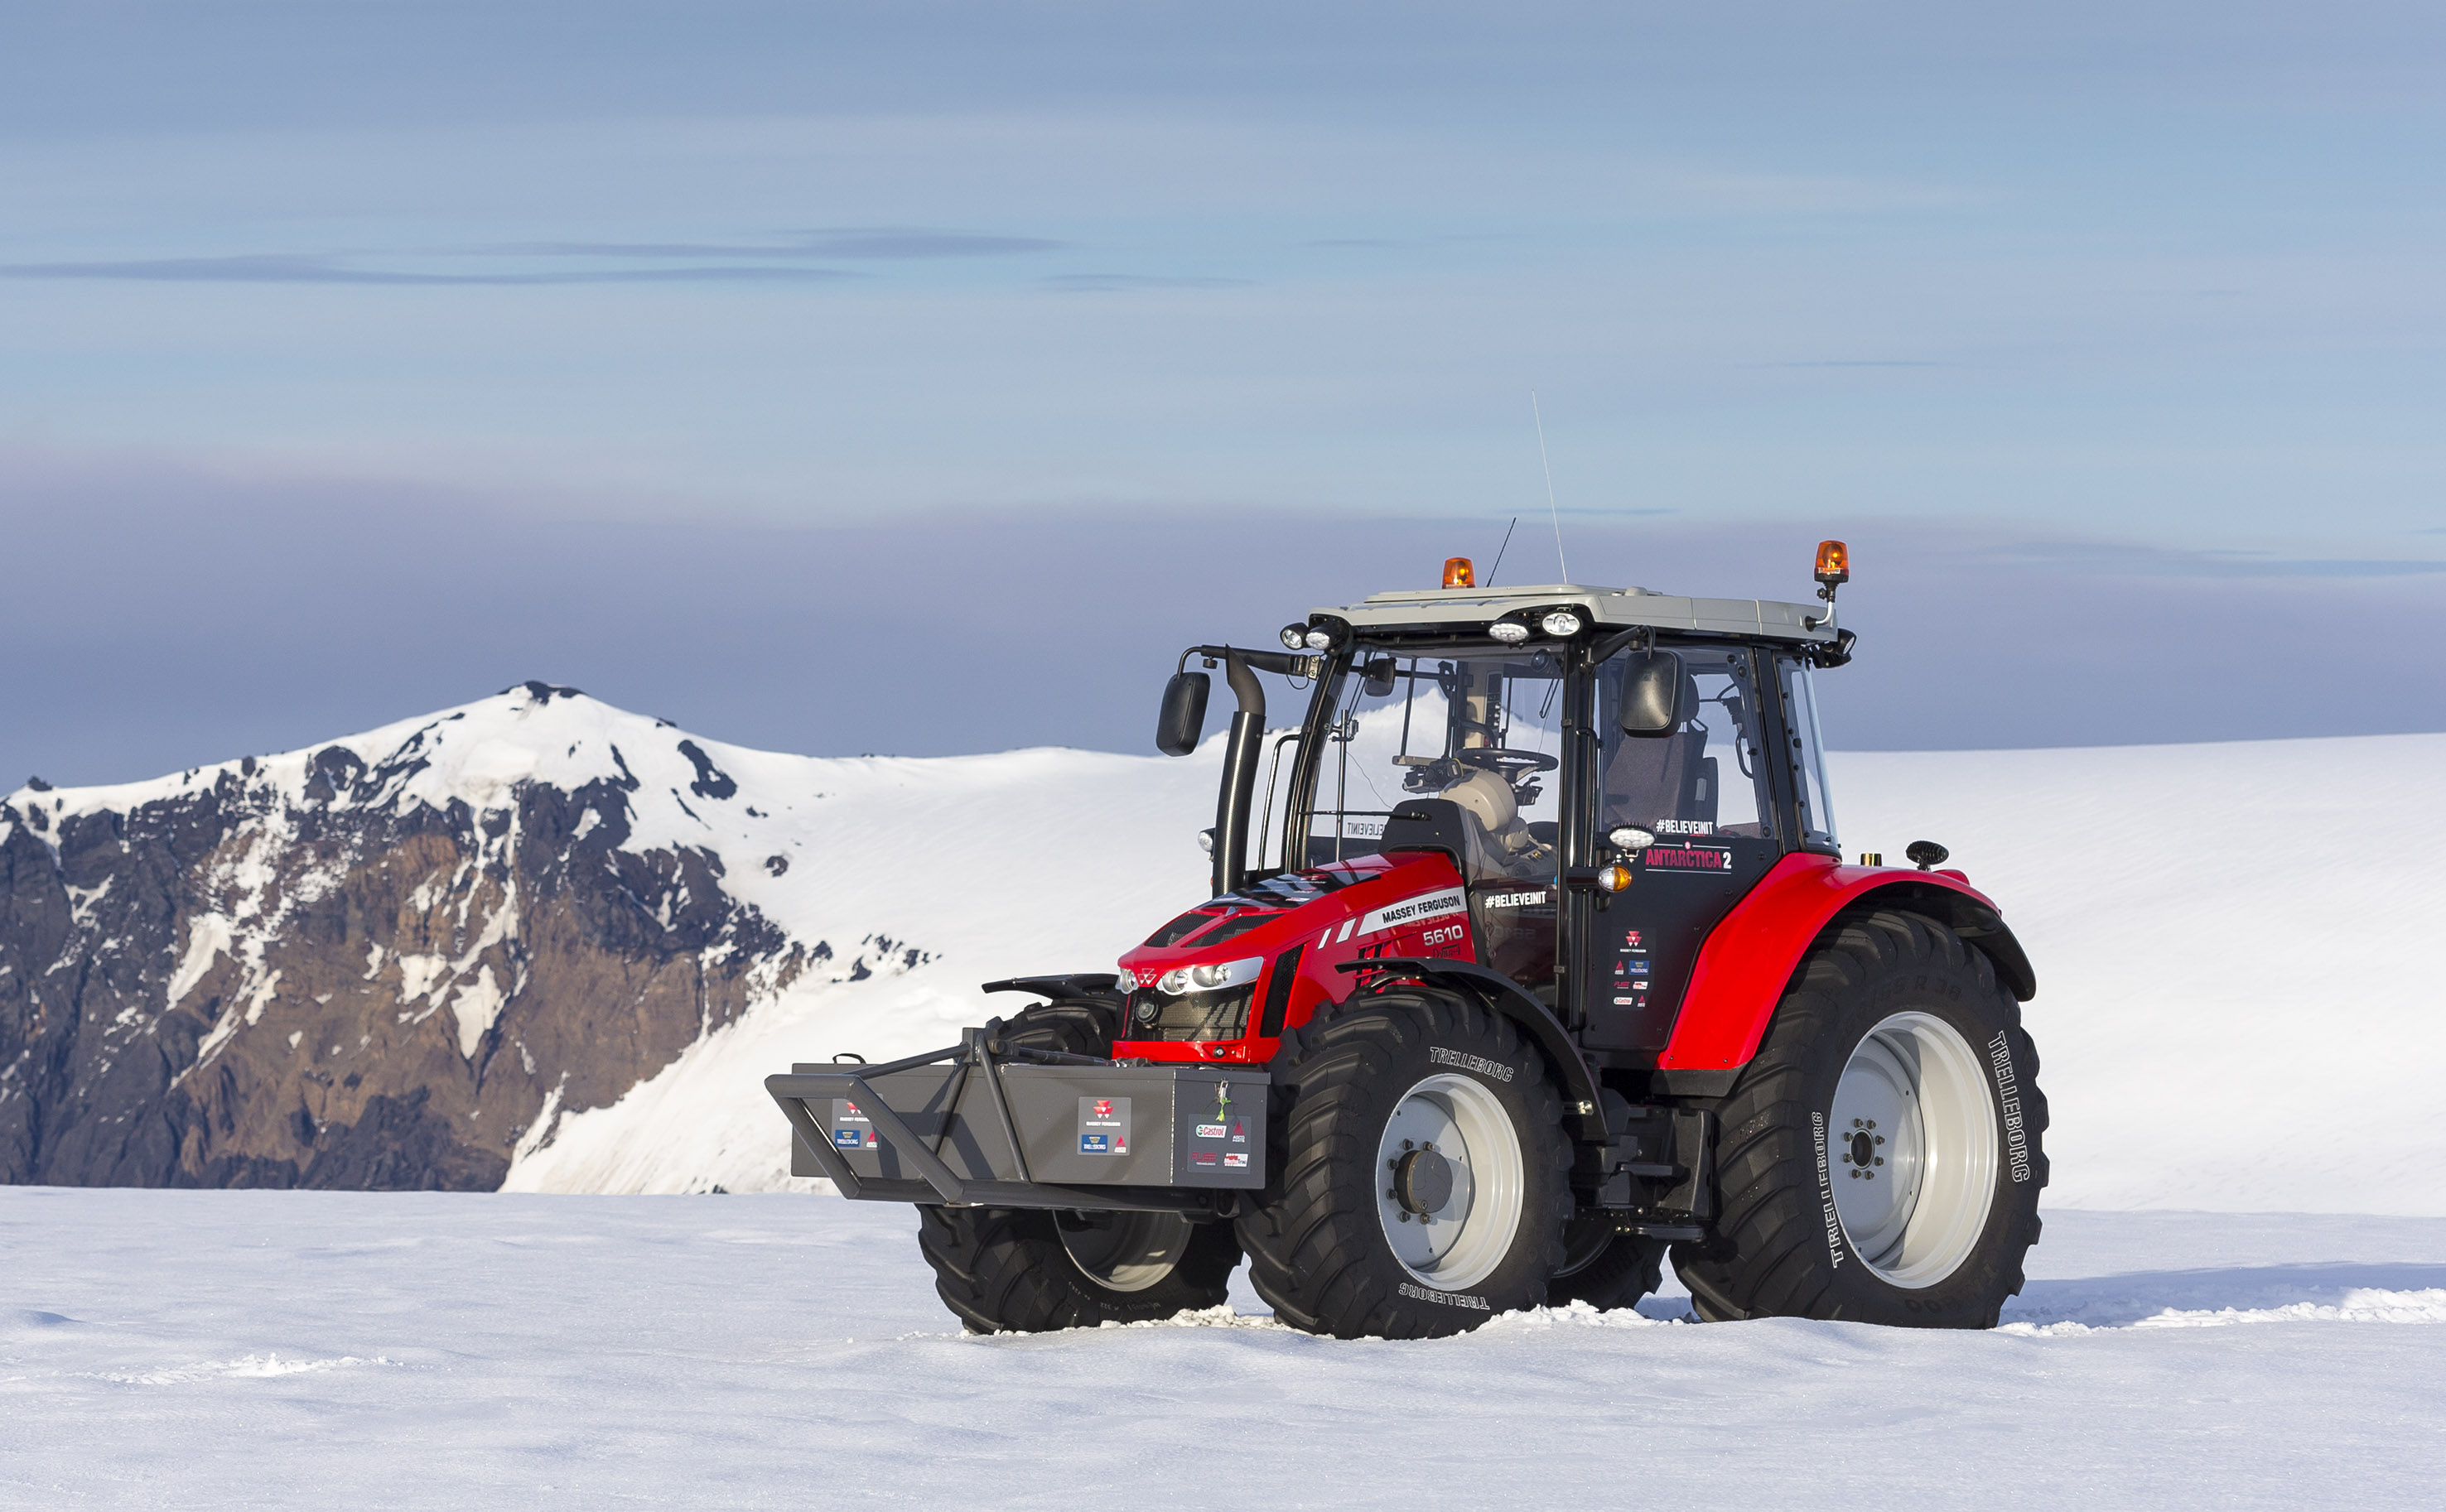 South Pole Tractor Expedition